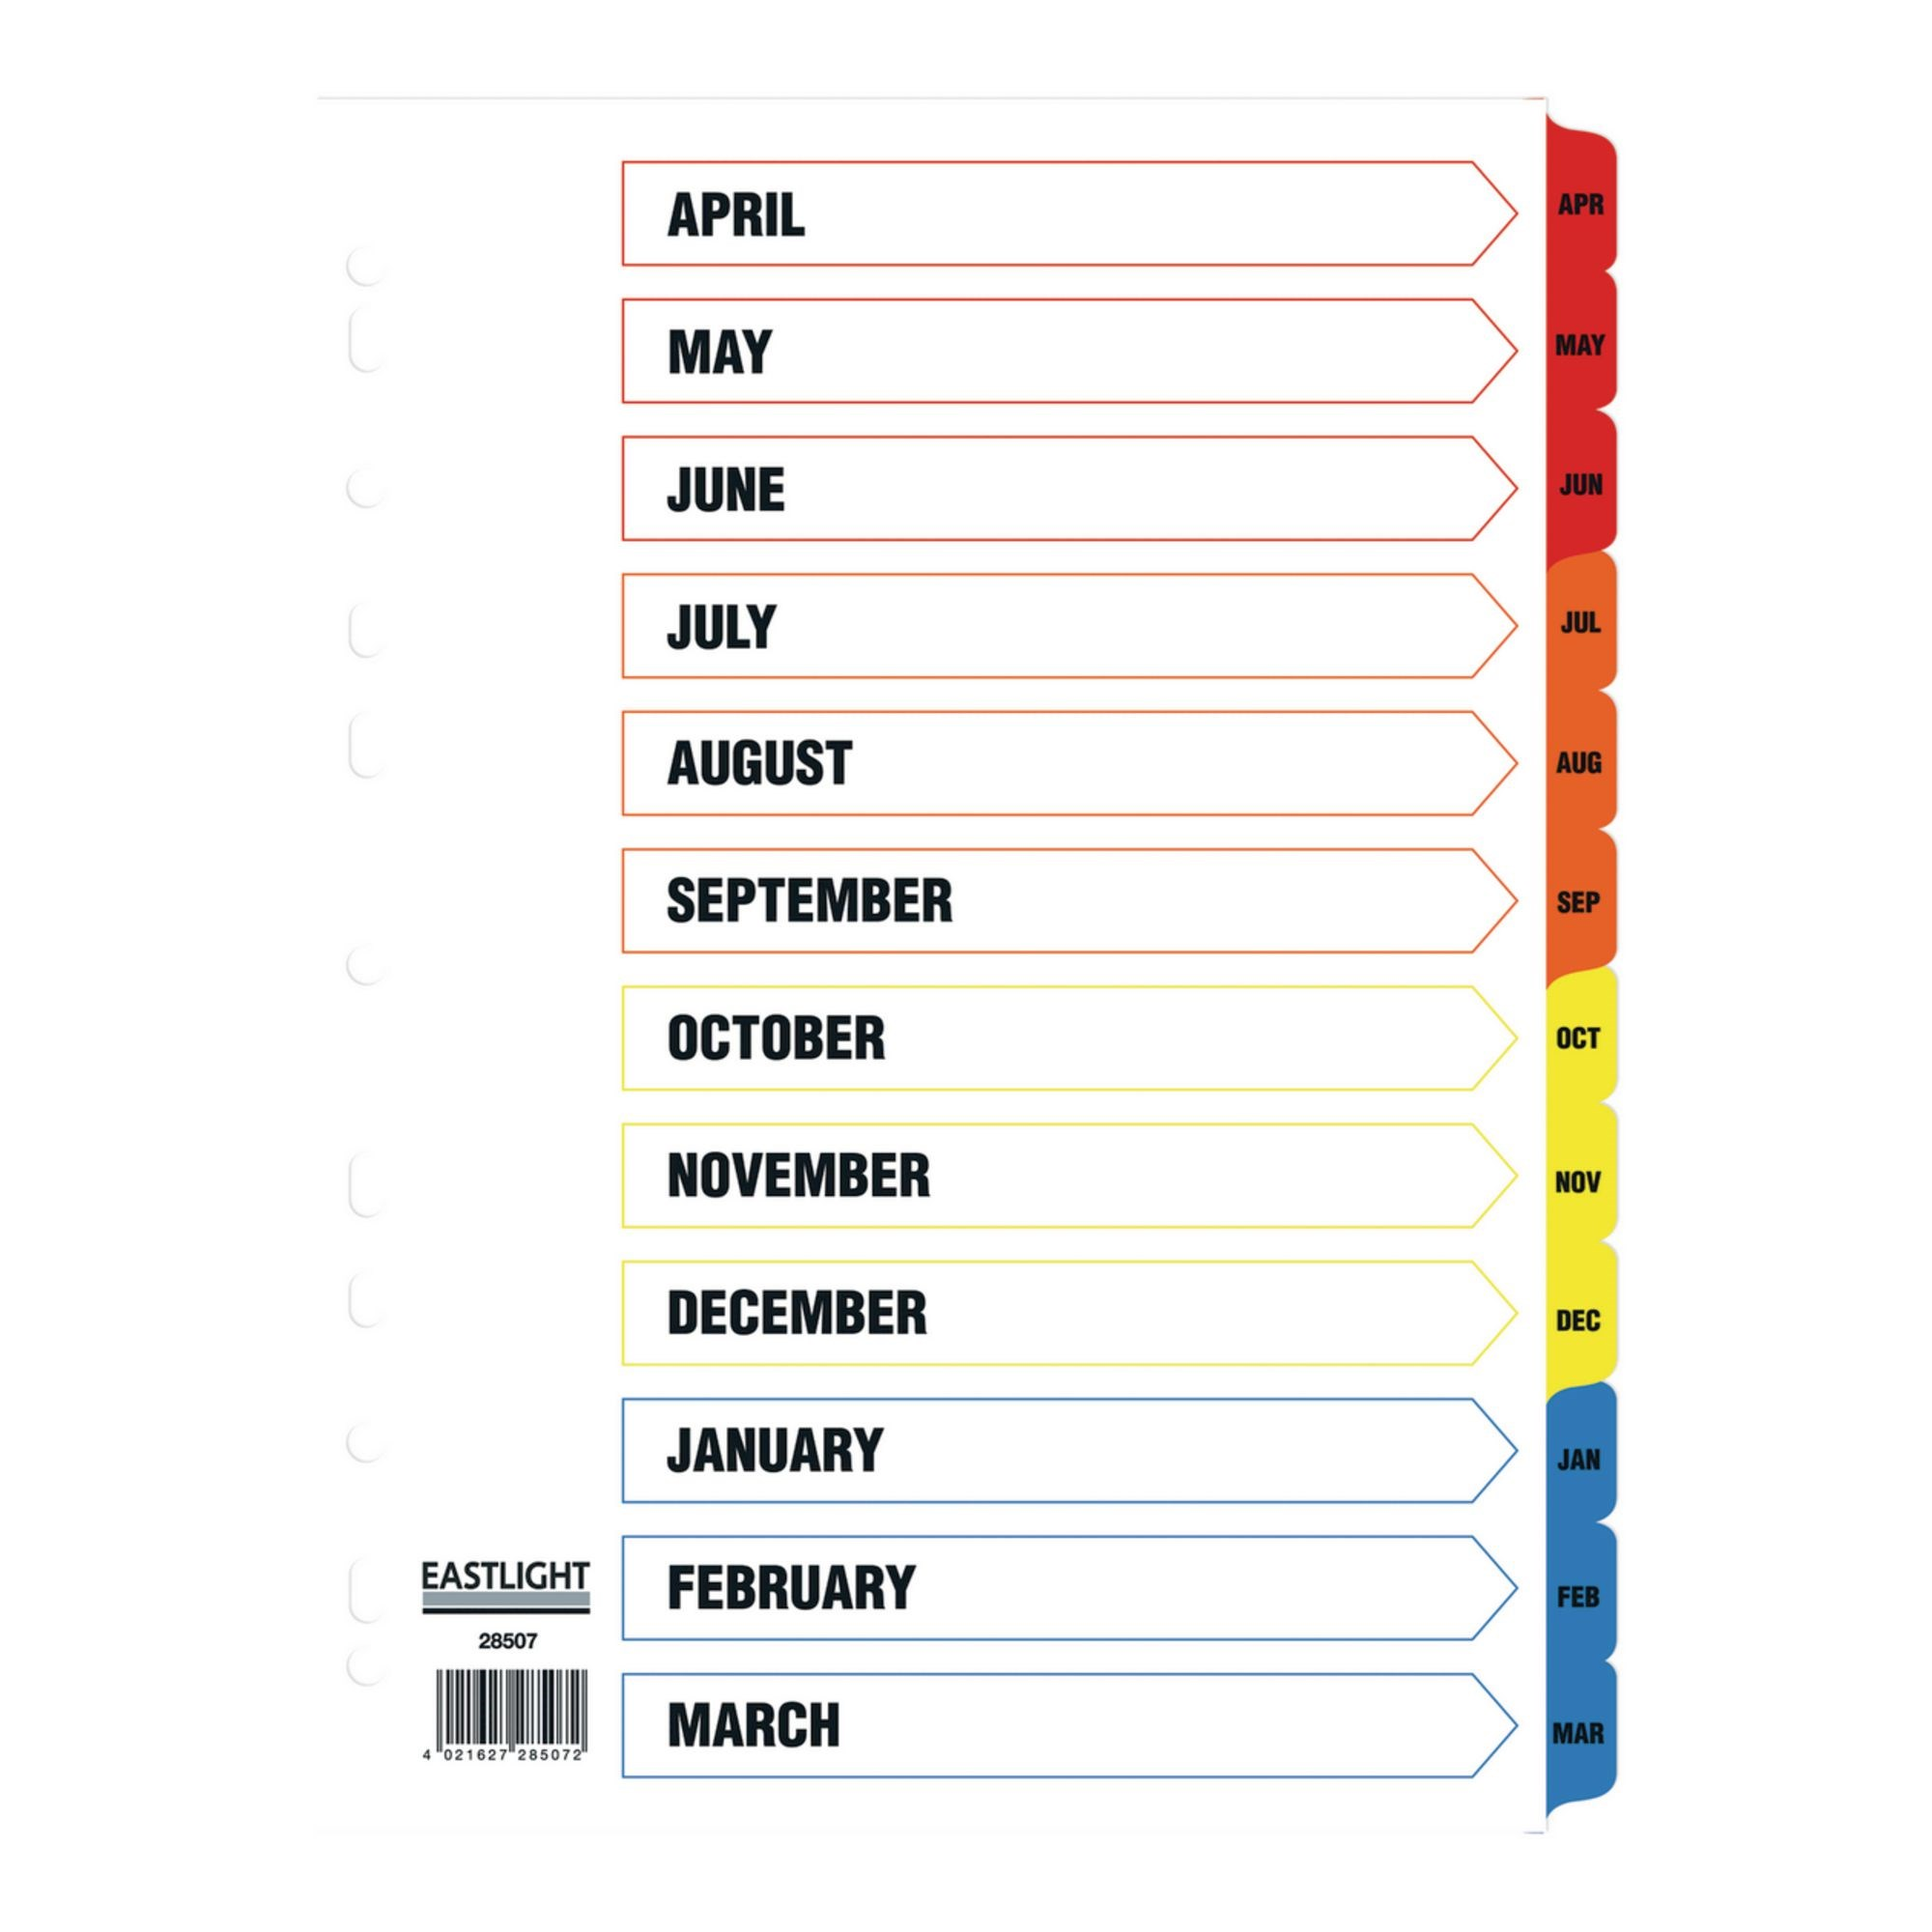 Eastlight April-March Fiscal Year Dividers (Pack of 5)